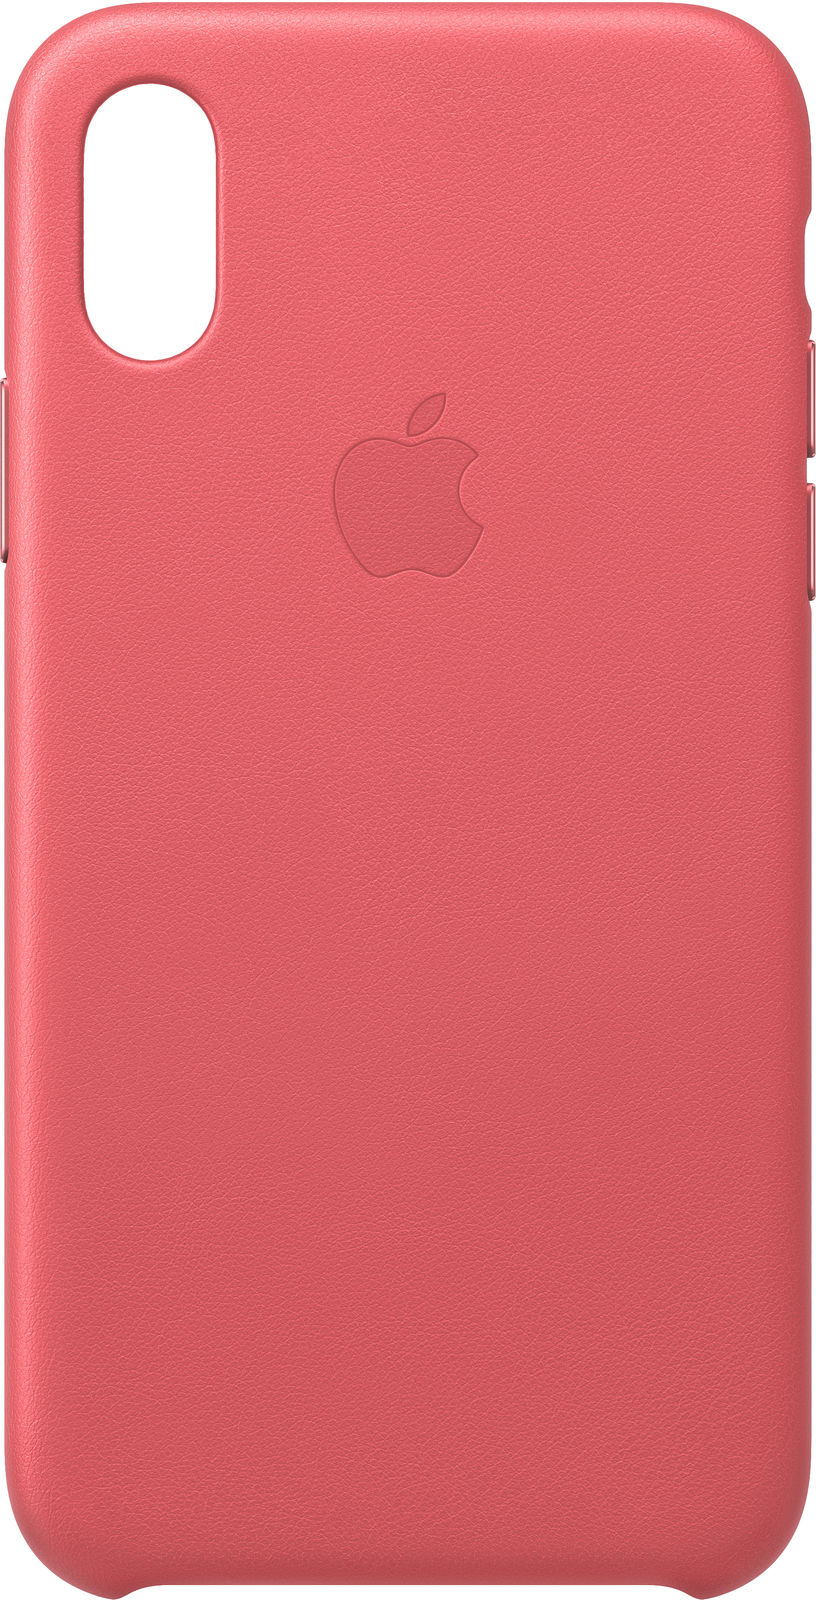 iPhone Xs - Leather Case - Peony Pink